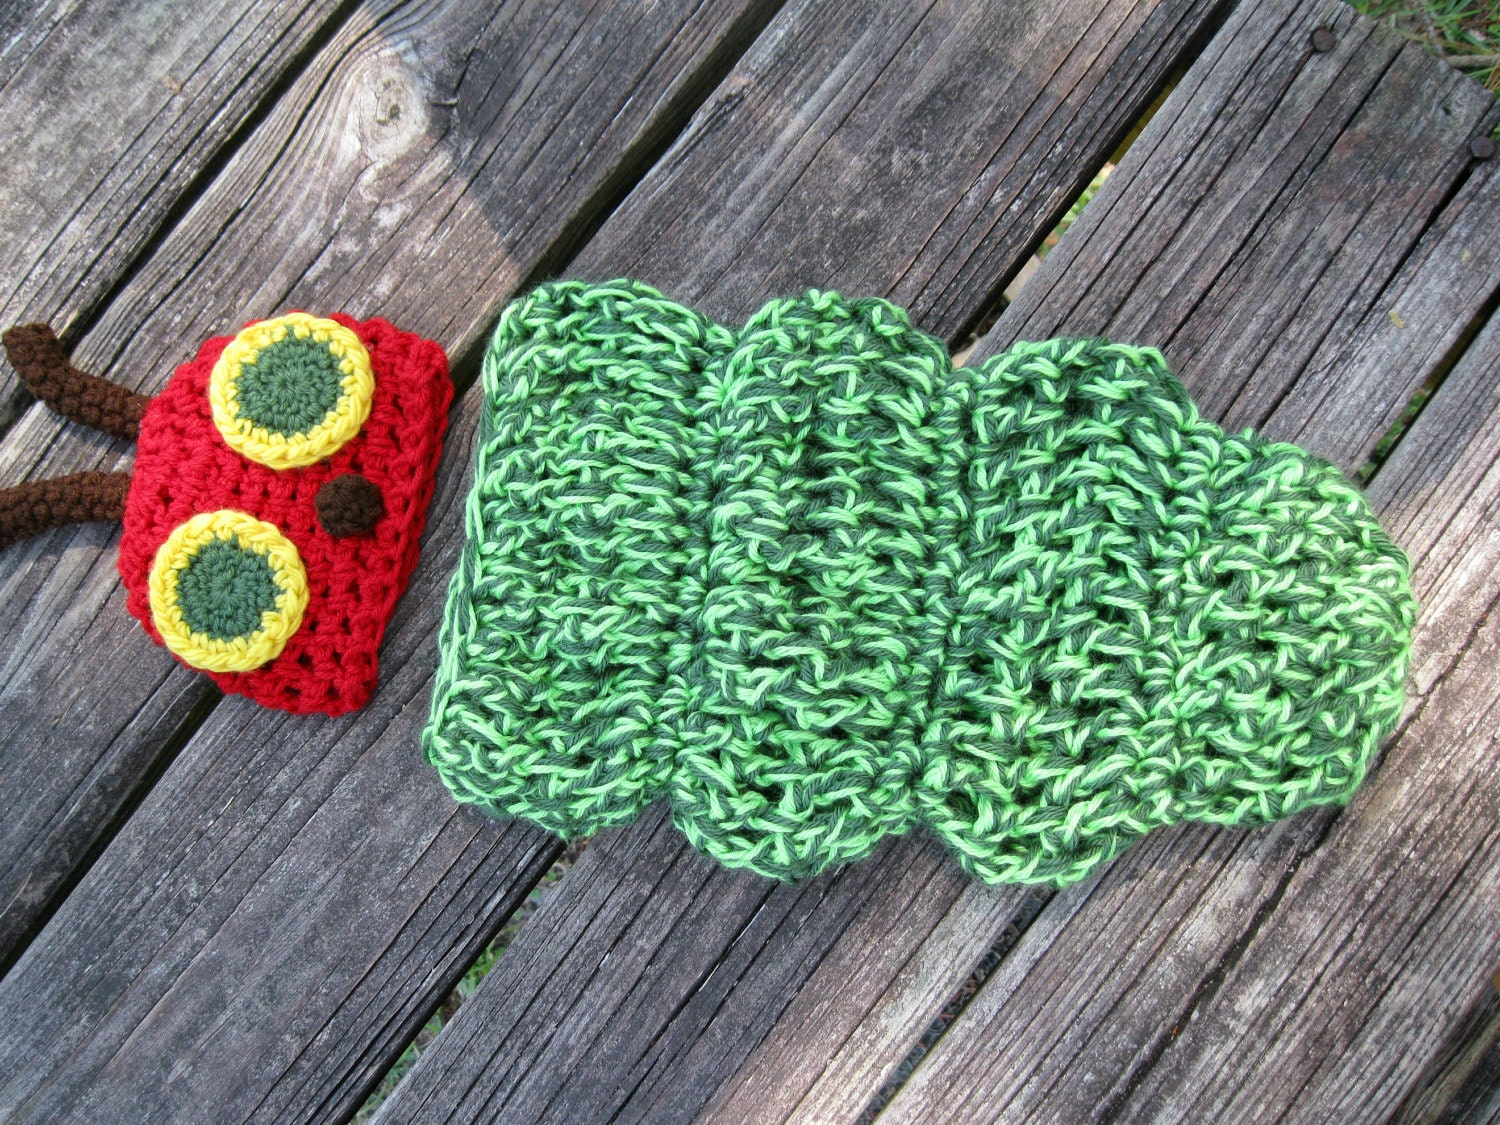 Crochet Caterpillar Baby Outfit Pattern : Caterpillar Crocheted Baby Outfit Great Photography Prop